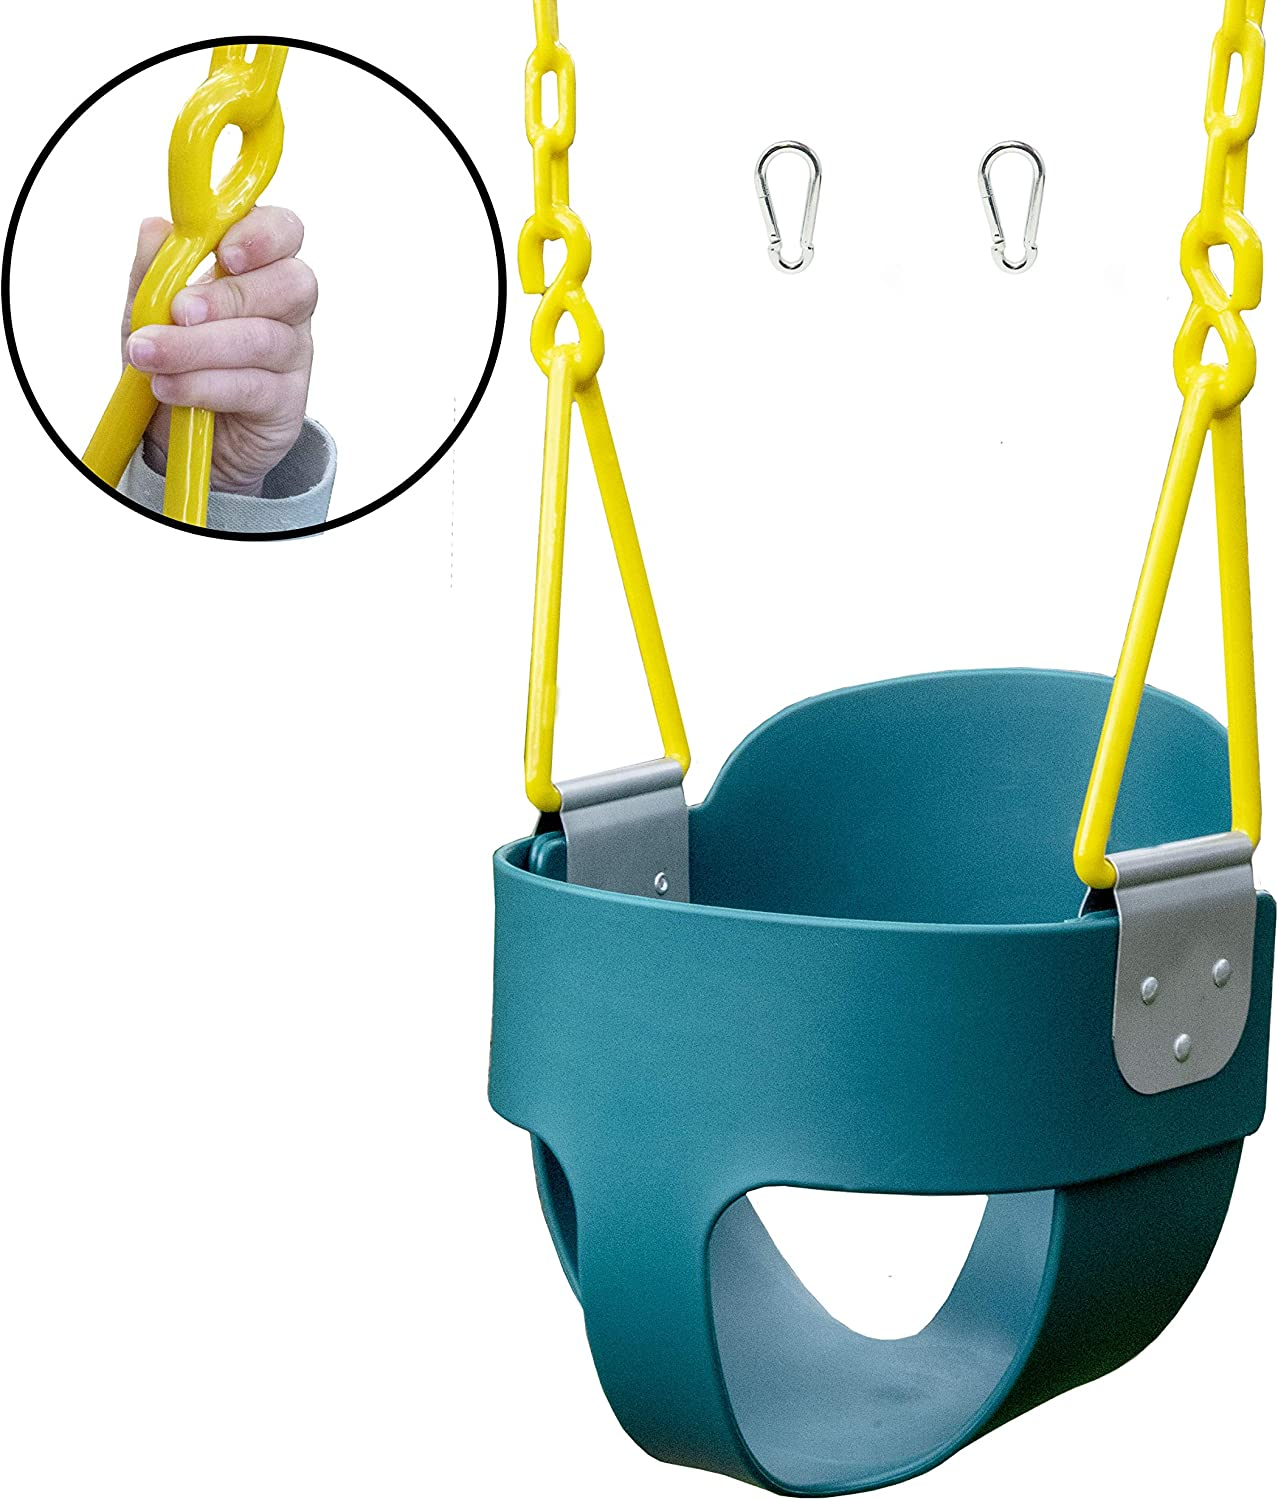 Squirrel Products High Back Full Bucket Toddler Swing with Exclusive Chain & Triangle Dip Pinch Protection and Carabiners for Easy Install- Green